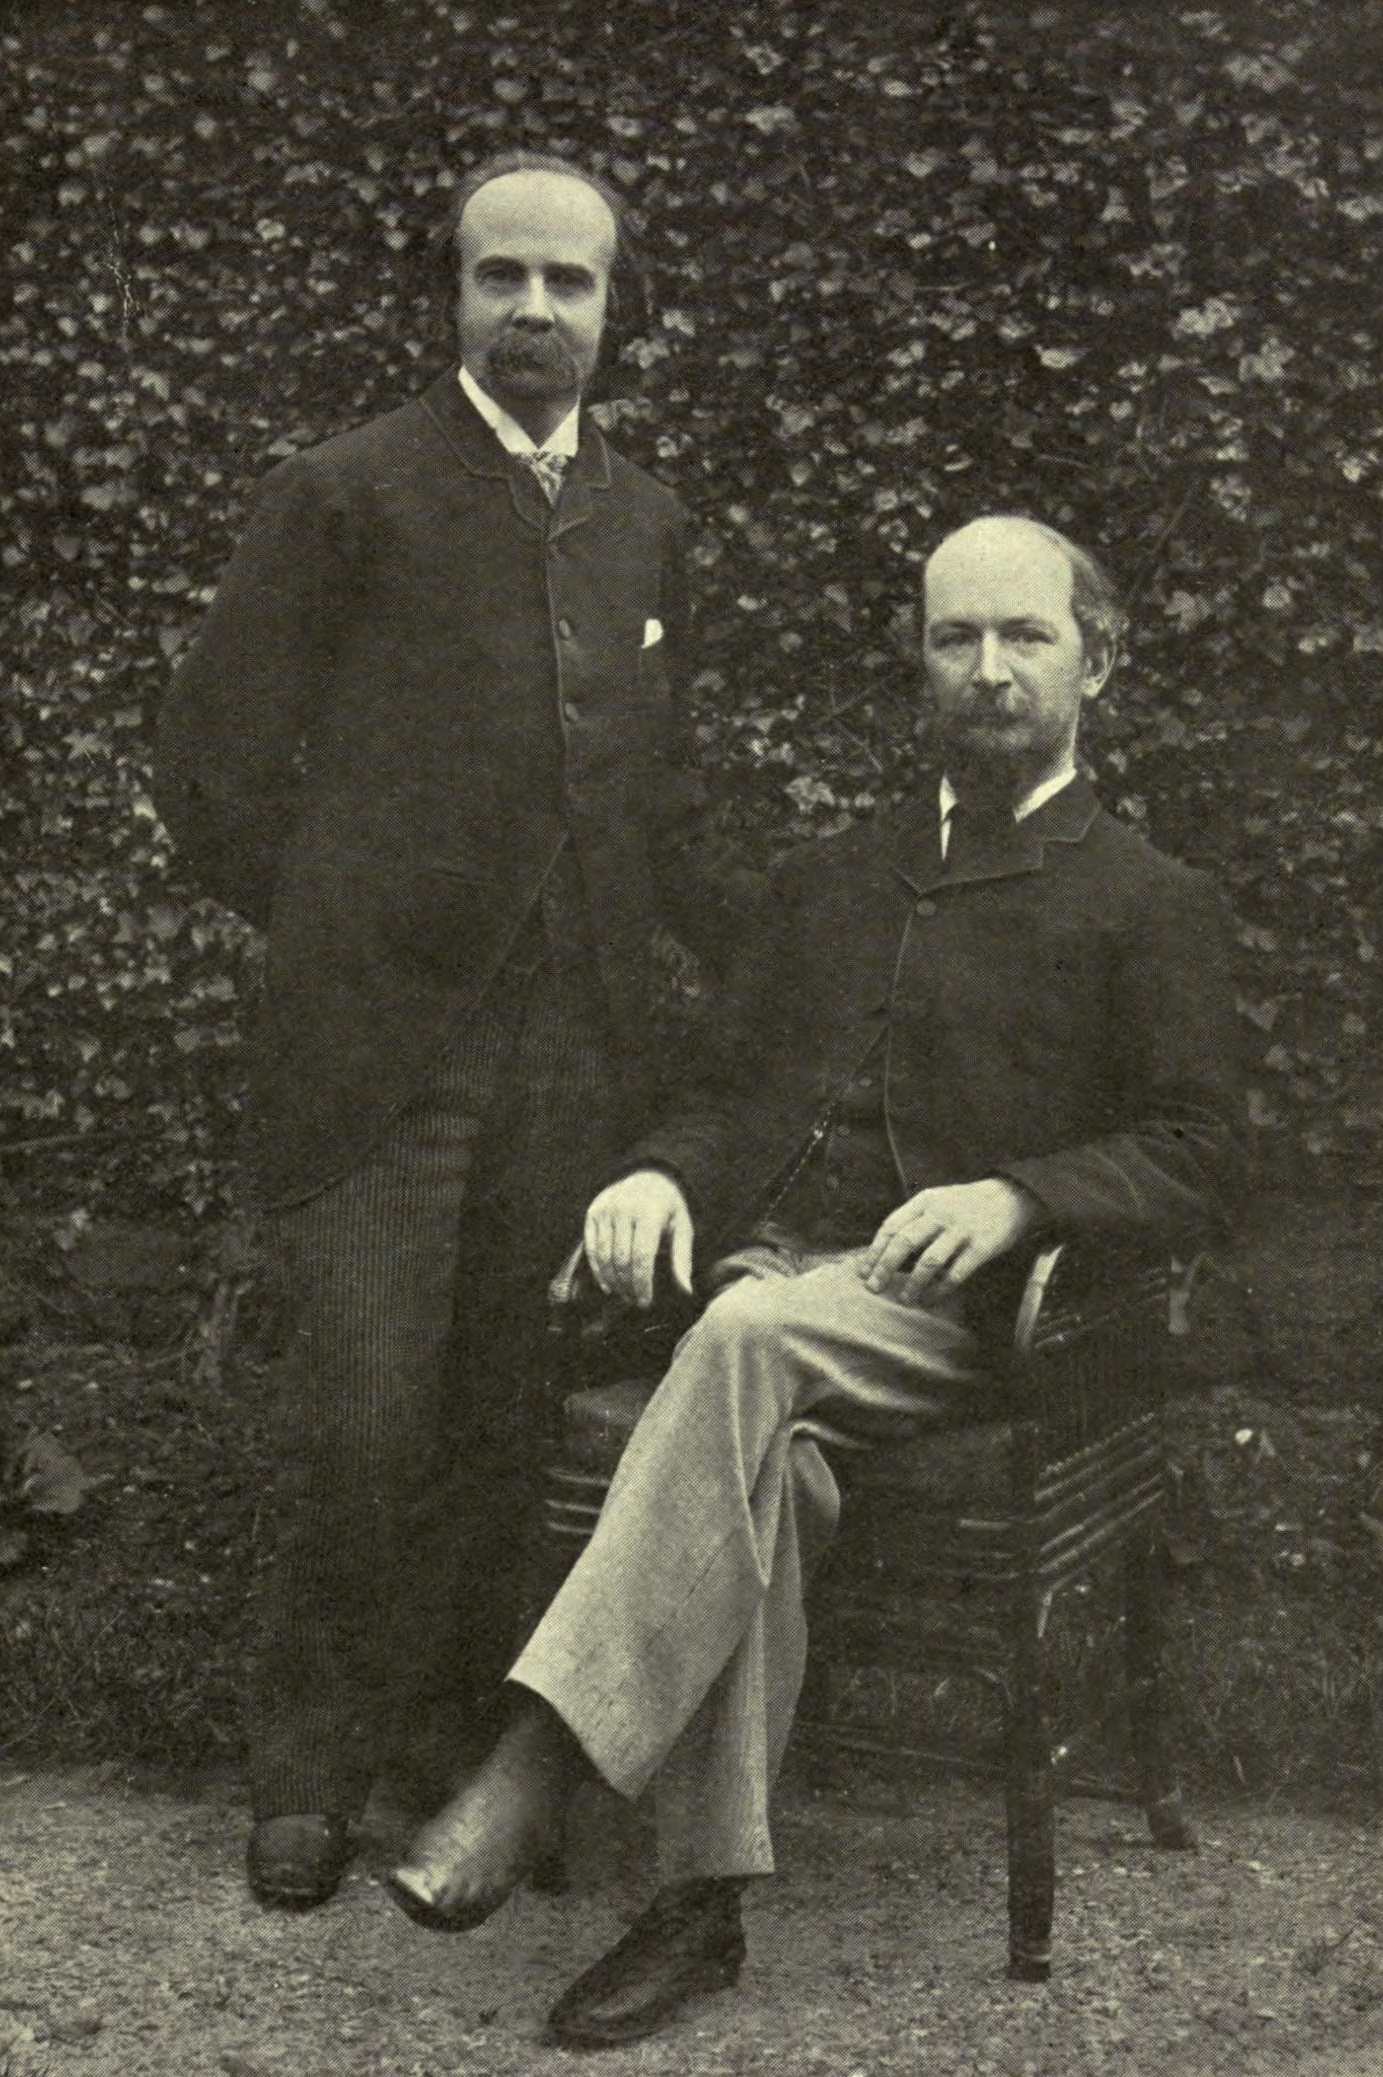 Algernon Charles Swinburne photo #8937, Algernon Charles Swinburne image